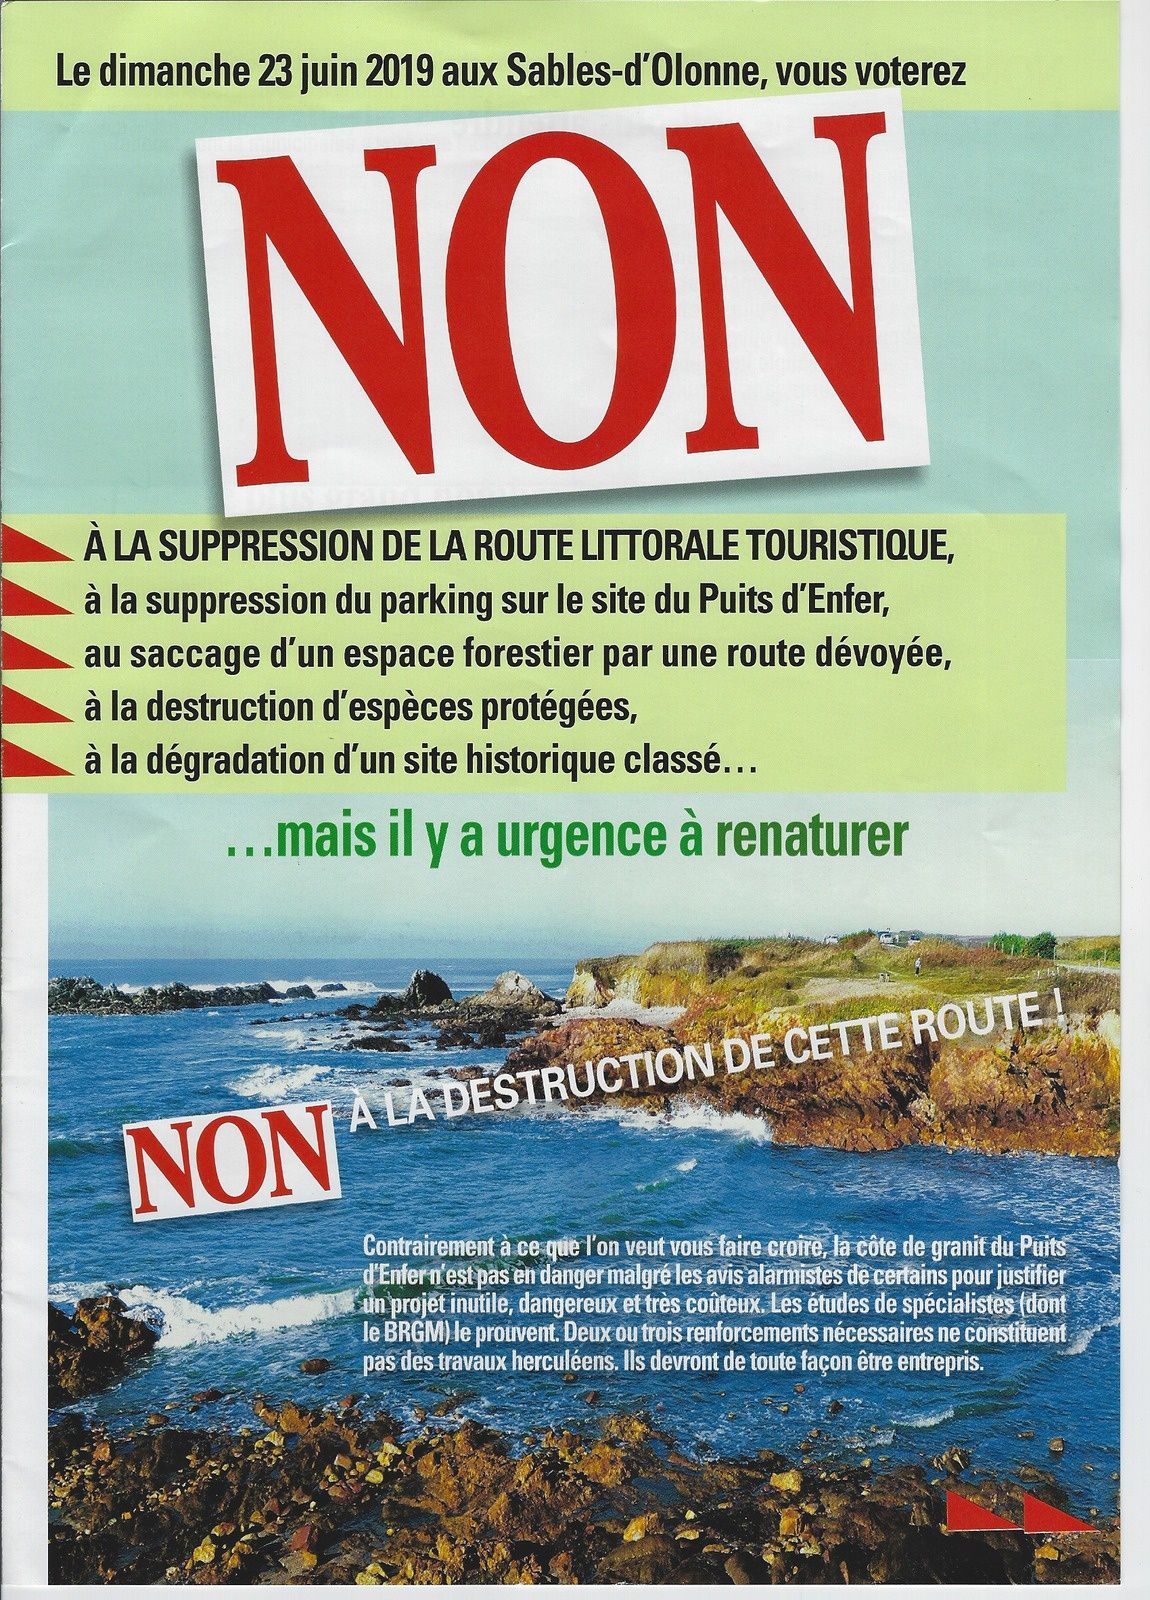 LES SABLES D'OLONNE : LITTORAL DÉVOIEMENT DE LA ROUTE, SUPPRESSION DU PARKING DU PUITS D'ENFER...POURQUOI VOTER NON ?